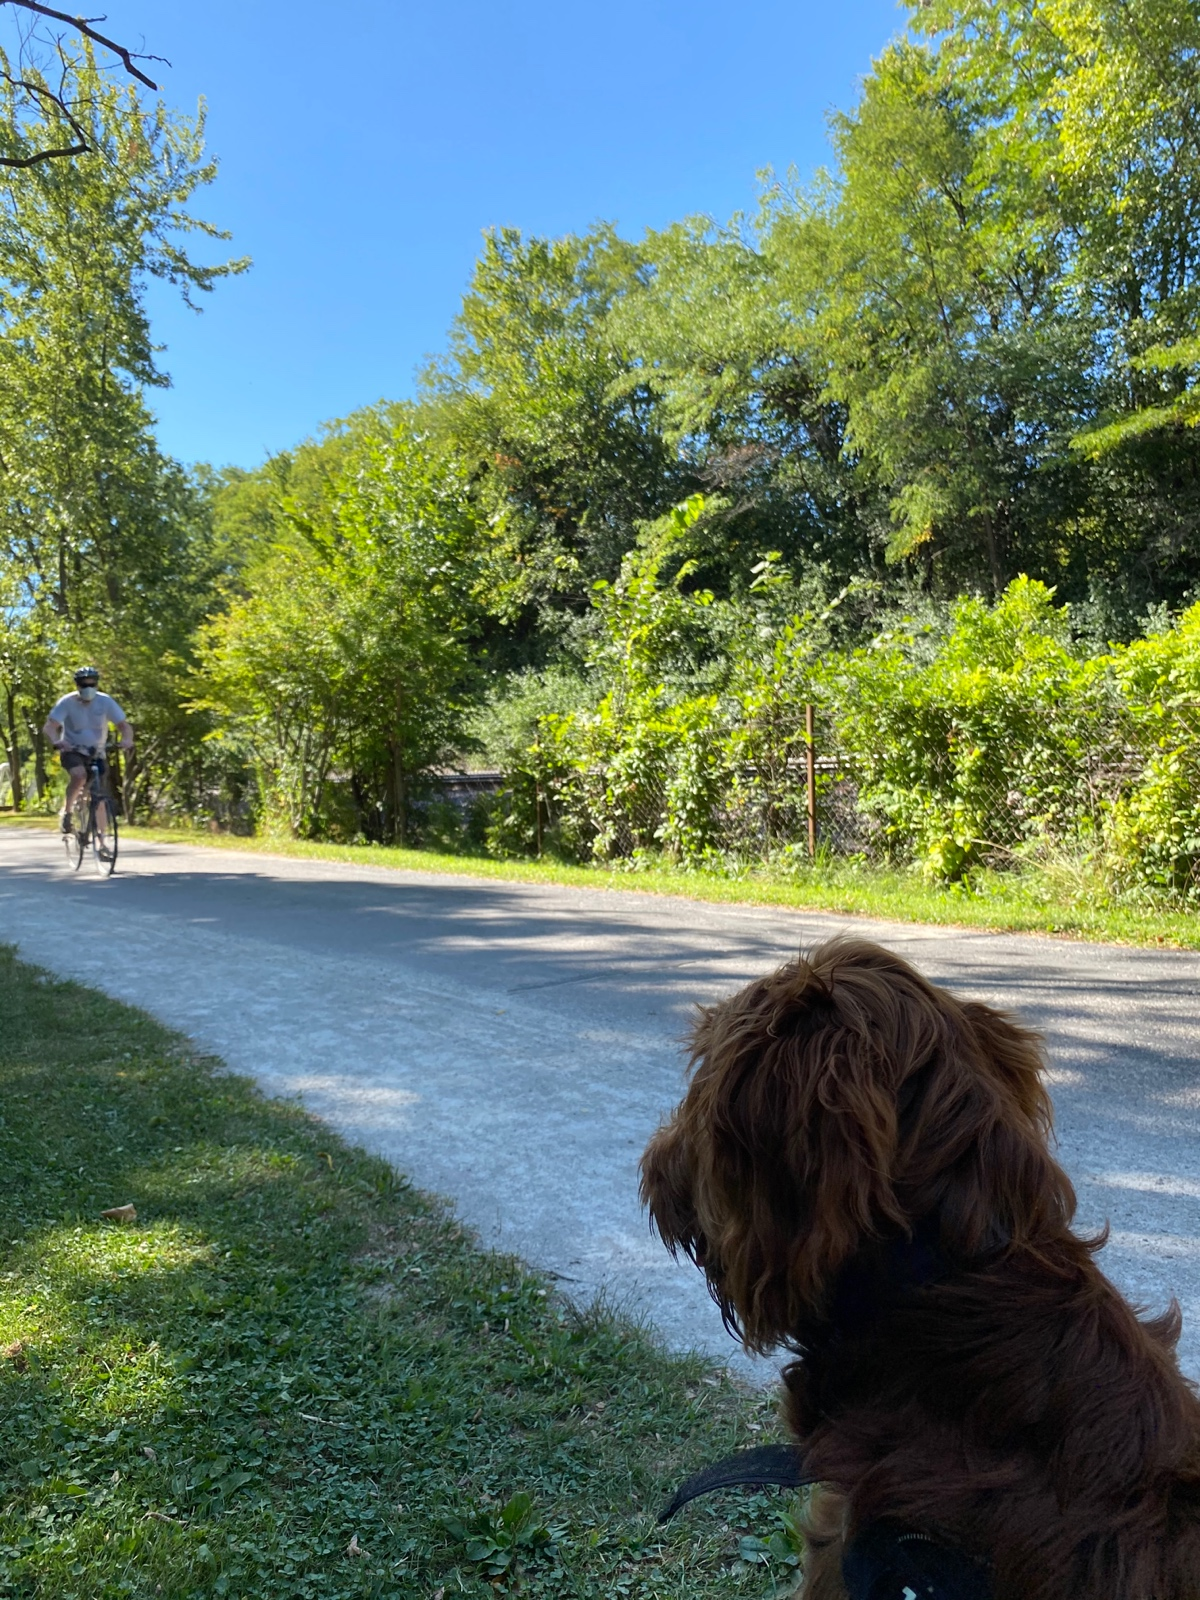 A Puppy Watching Life on The Trail